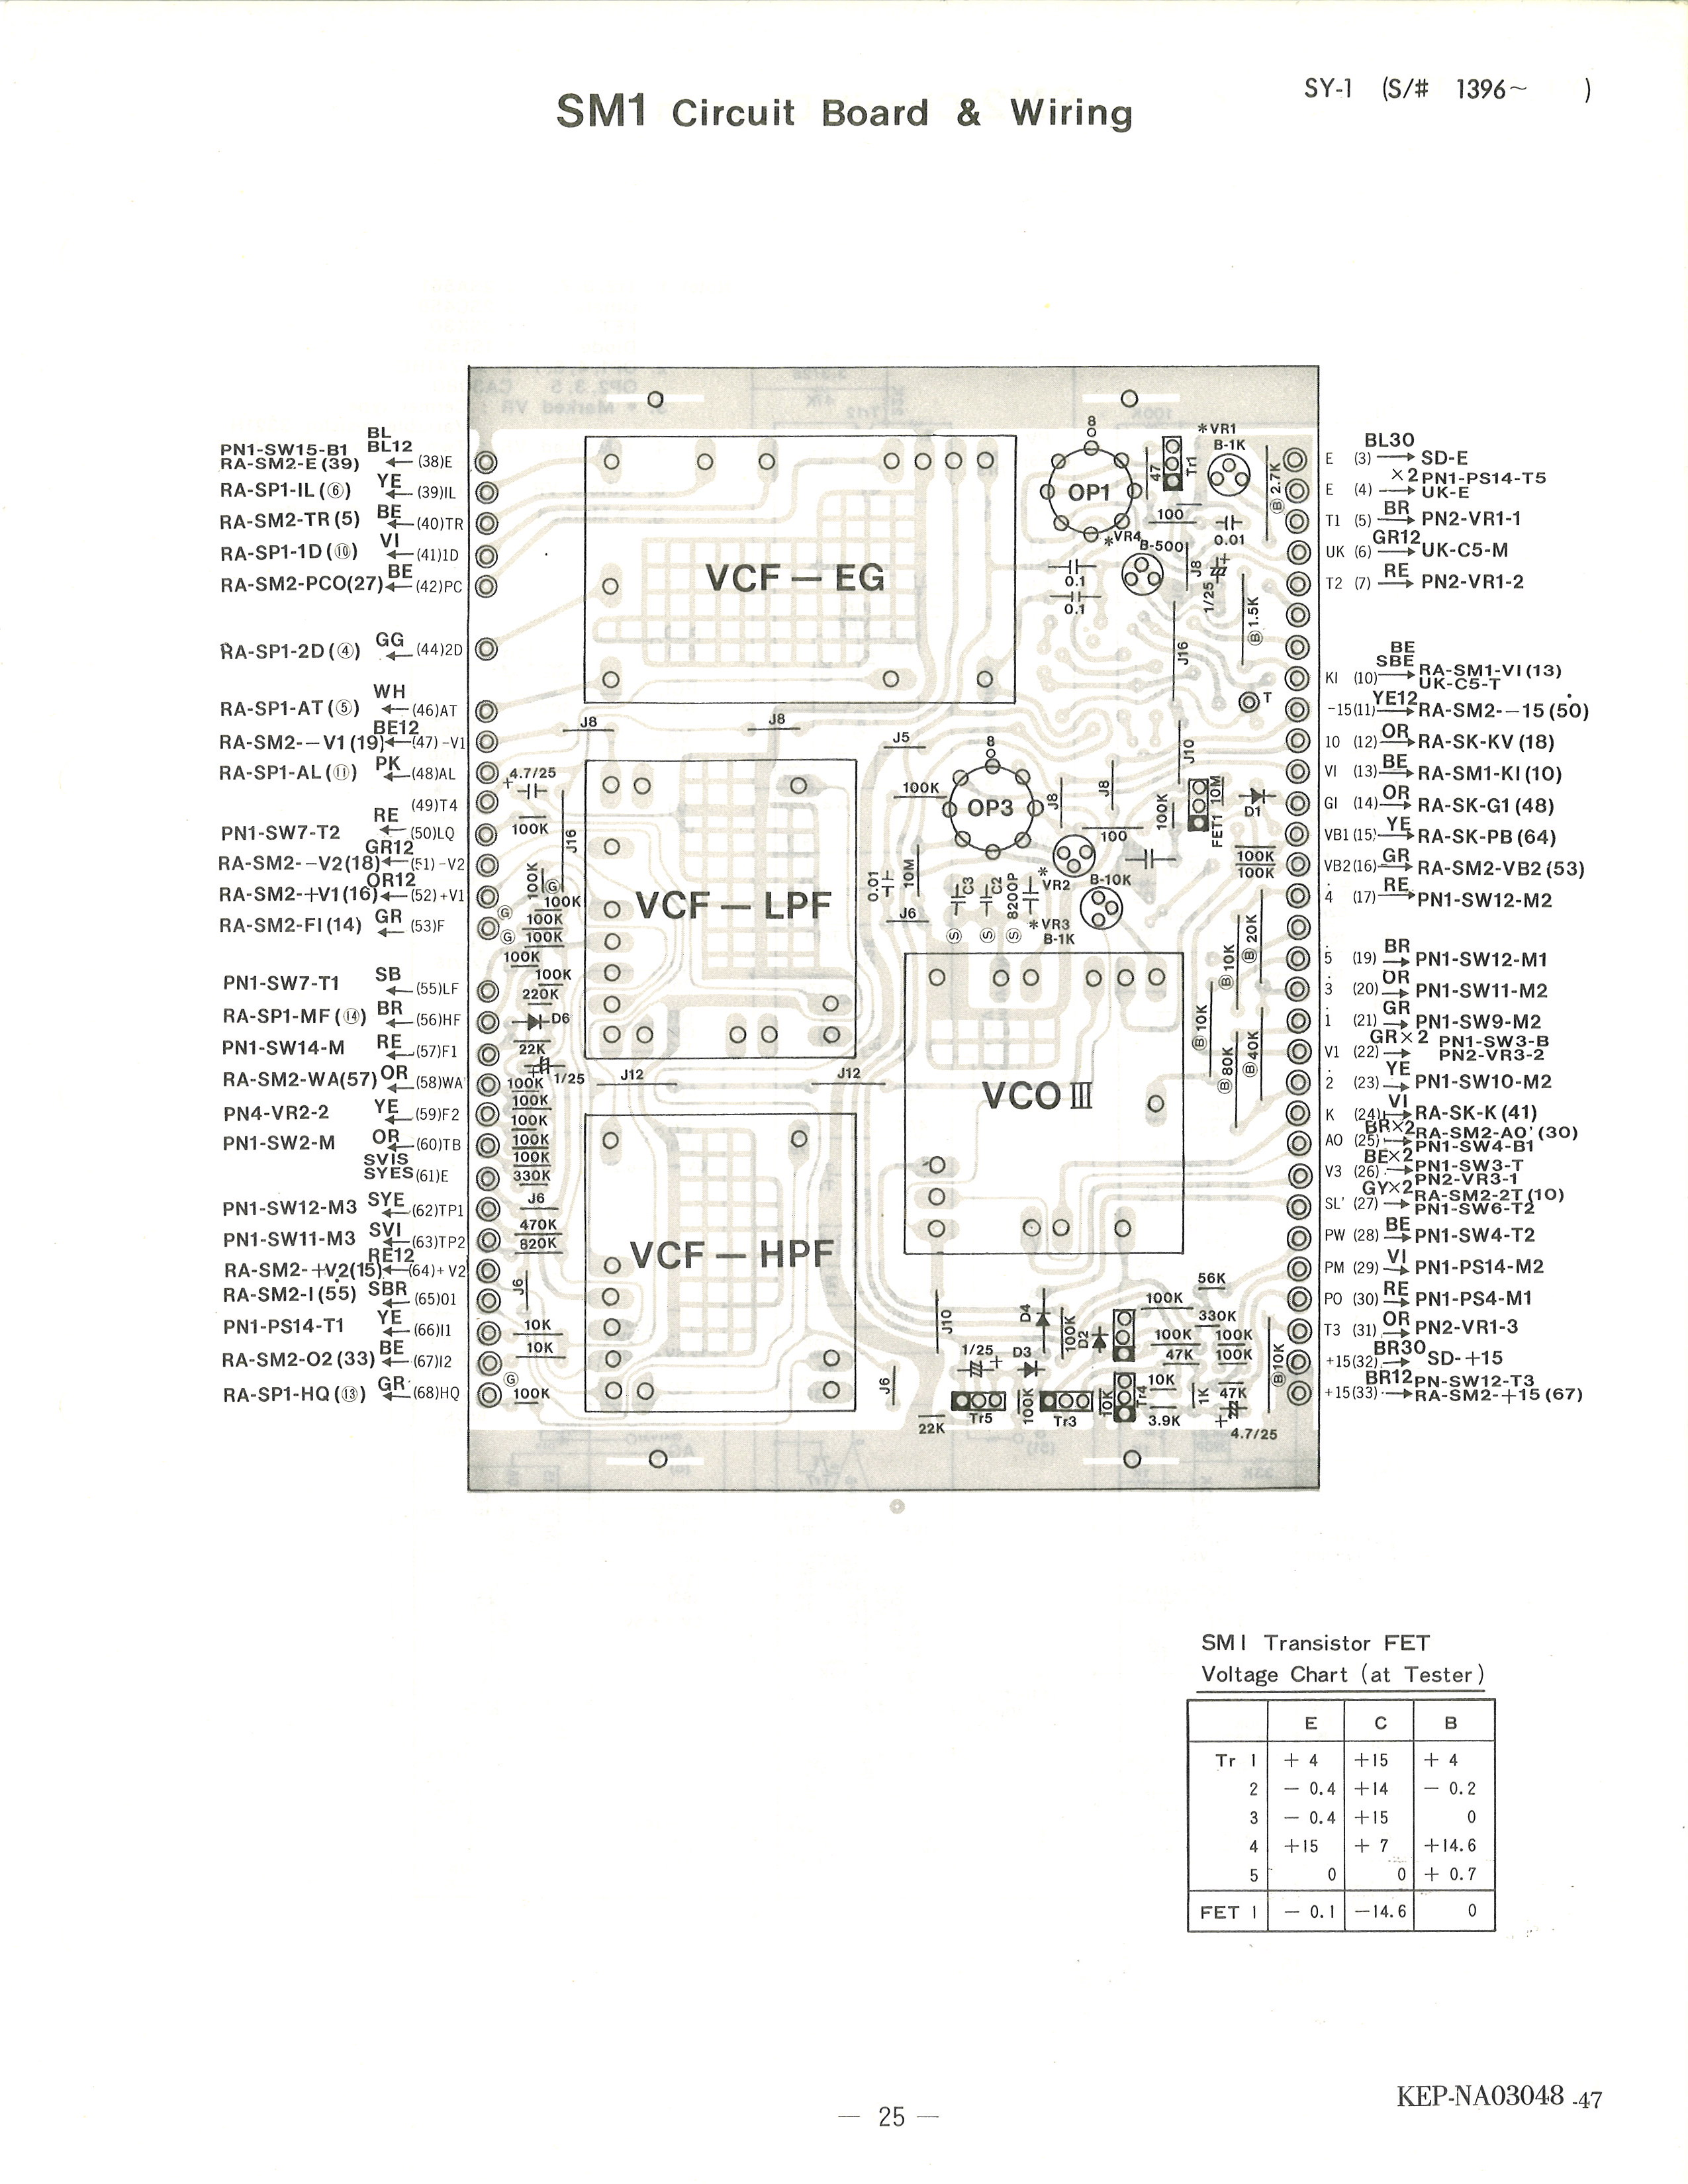 Yamaha Sy 1 Service Manual Circuit Diagram In Addition Mobile Phone On Pcb 26 Sm2 Sn 1396